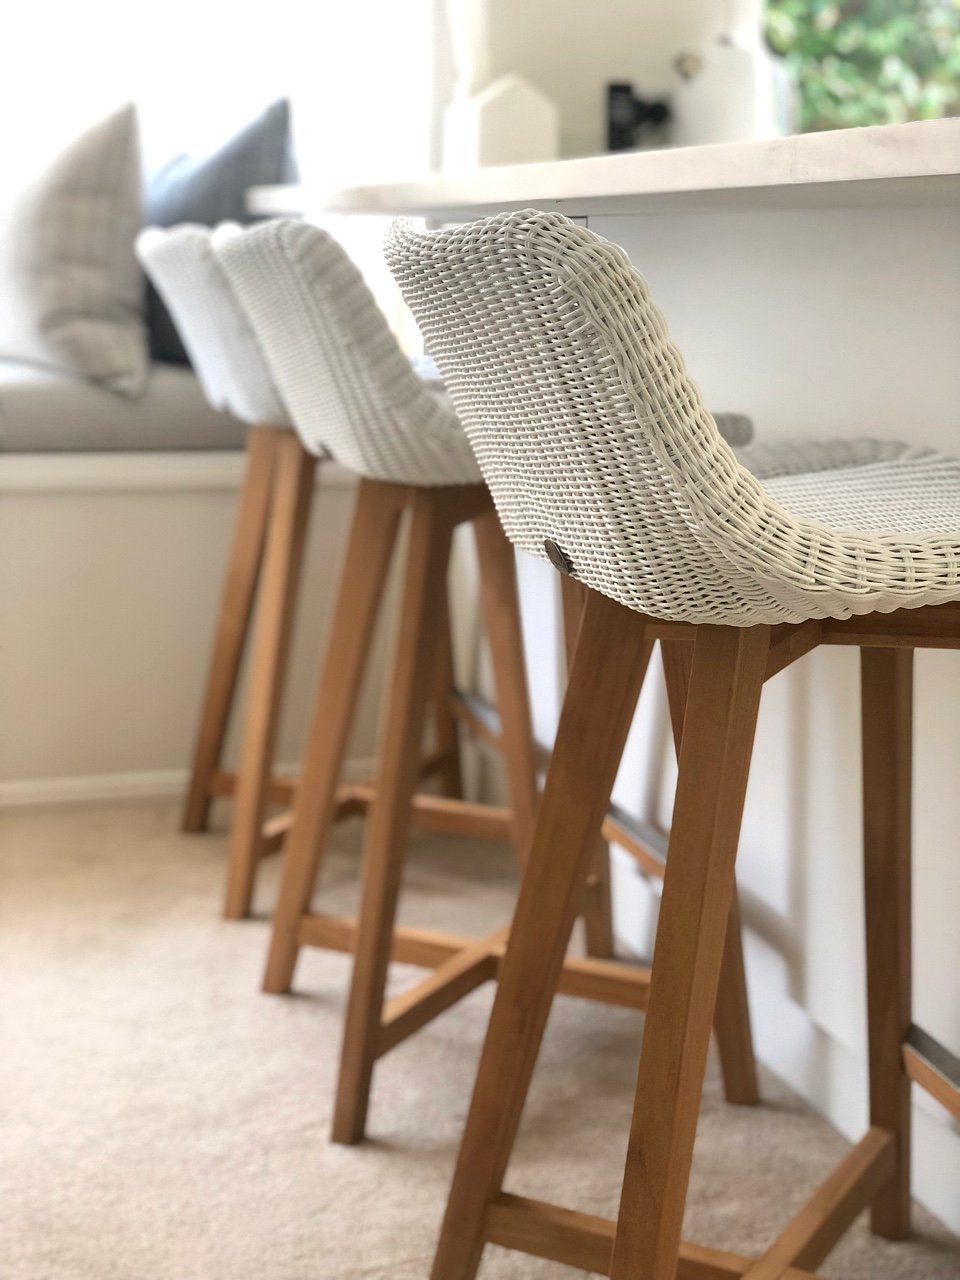 modern white and wood barstools at a kitchen breakfast bar